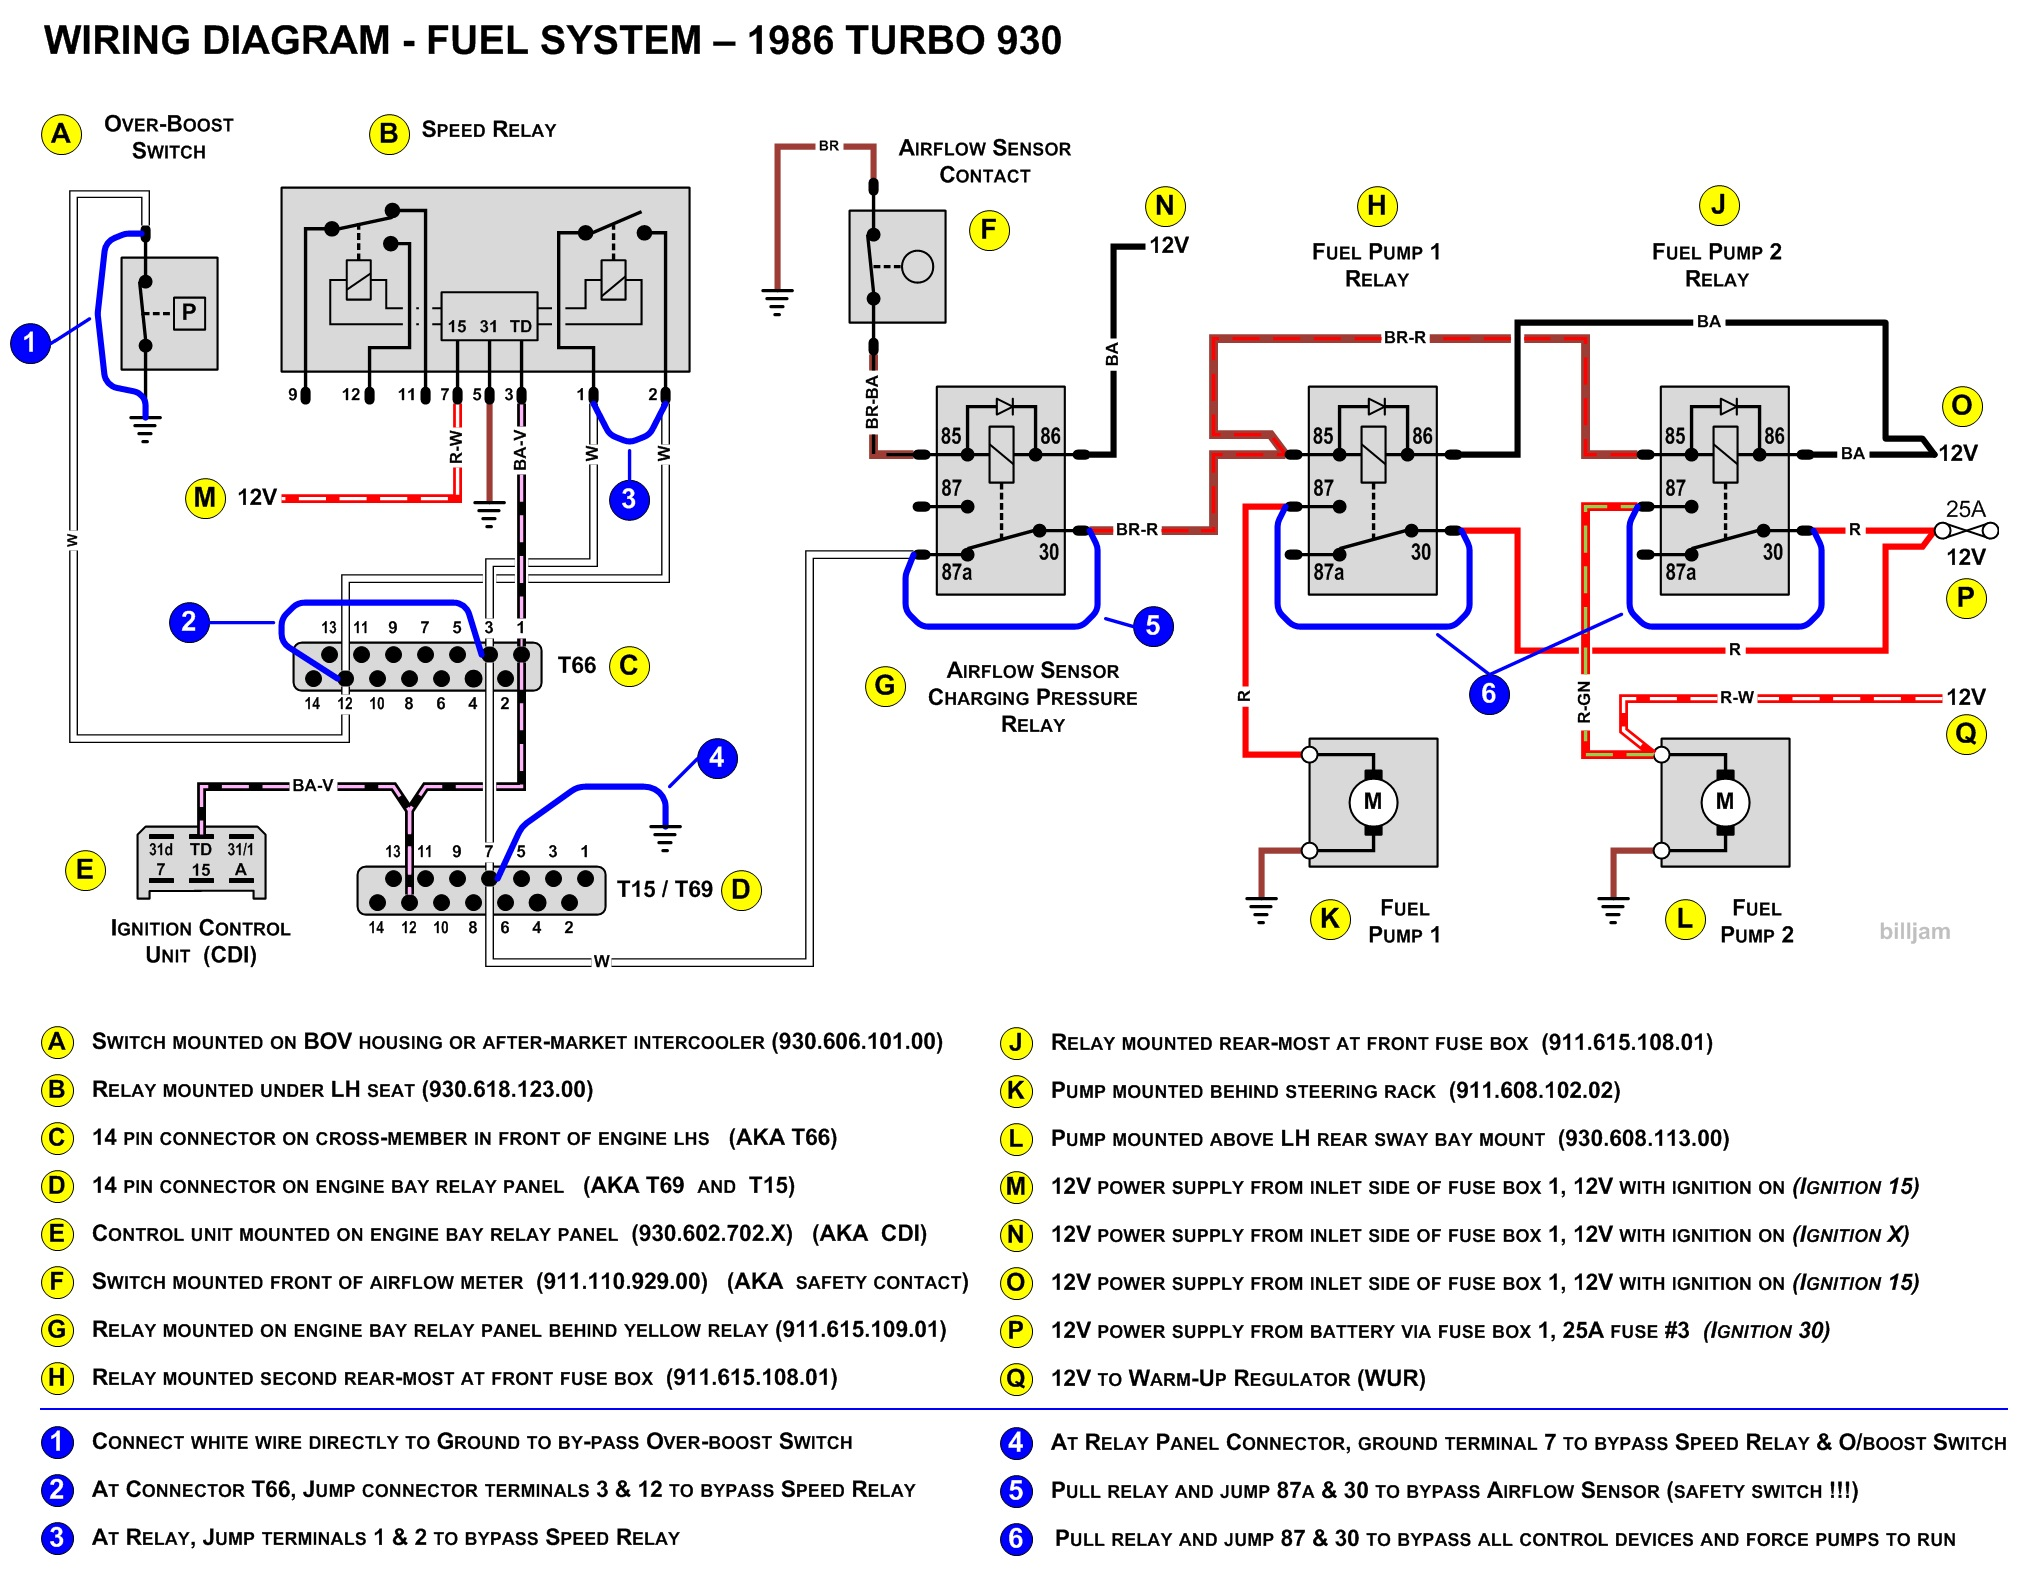 1978 Porsche 911 Fuse Box Diagram Trusted Wiring Online David Clark Headset Made A Label For My 88 Page 3 Pelican Parts Forums 1979 911sc